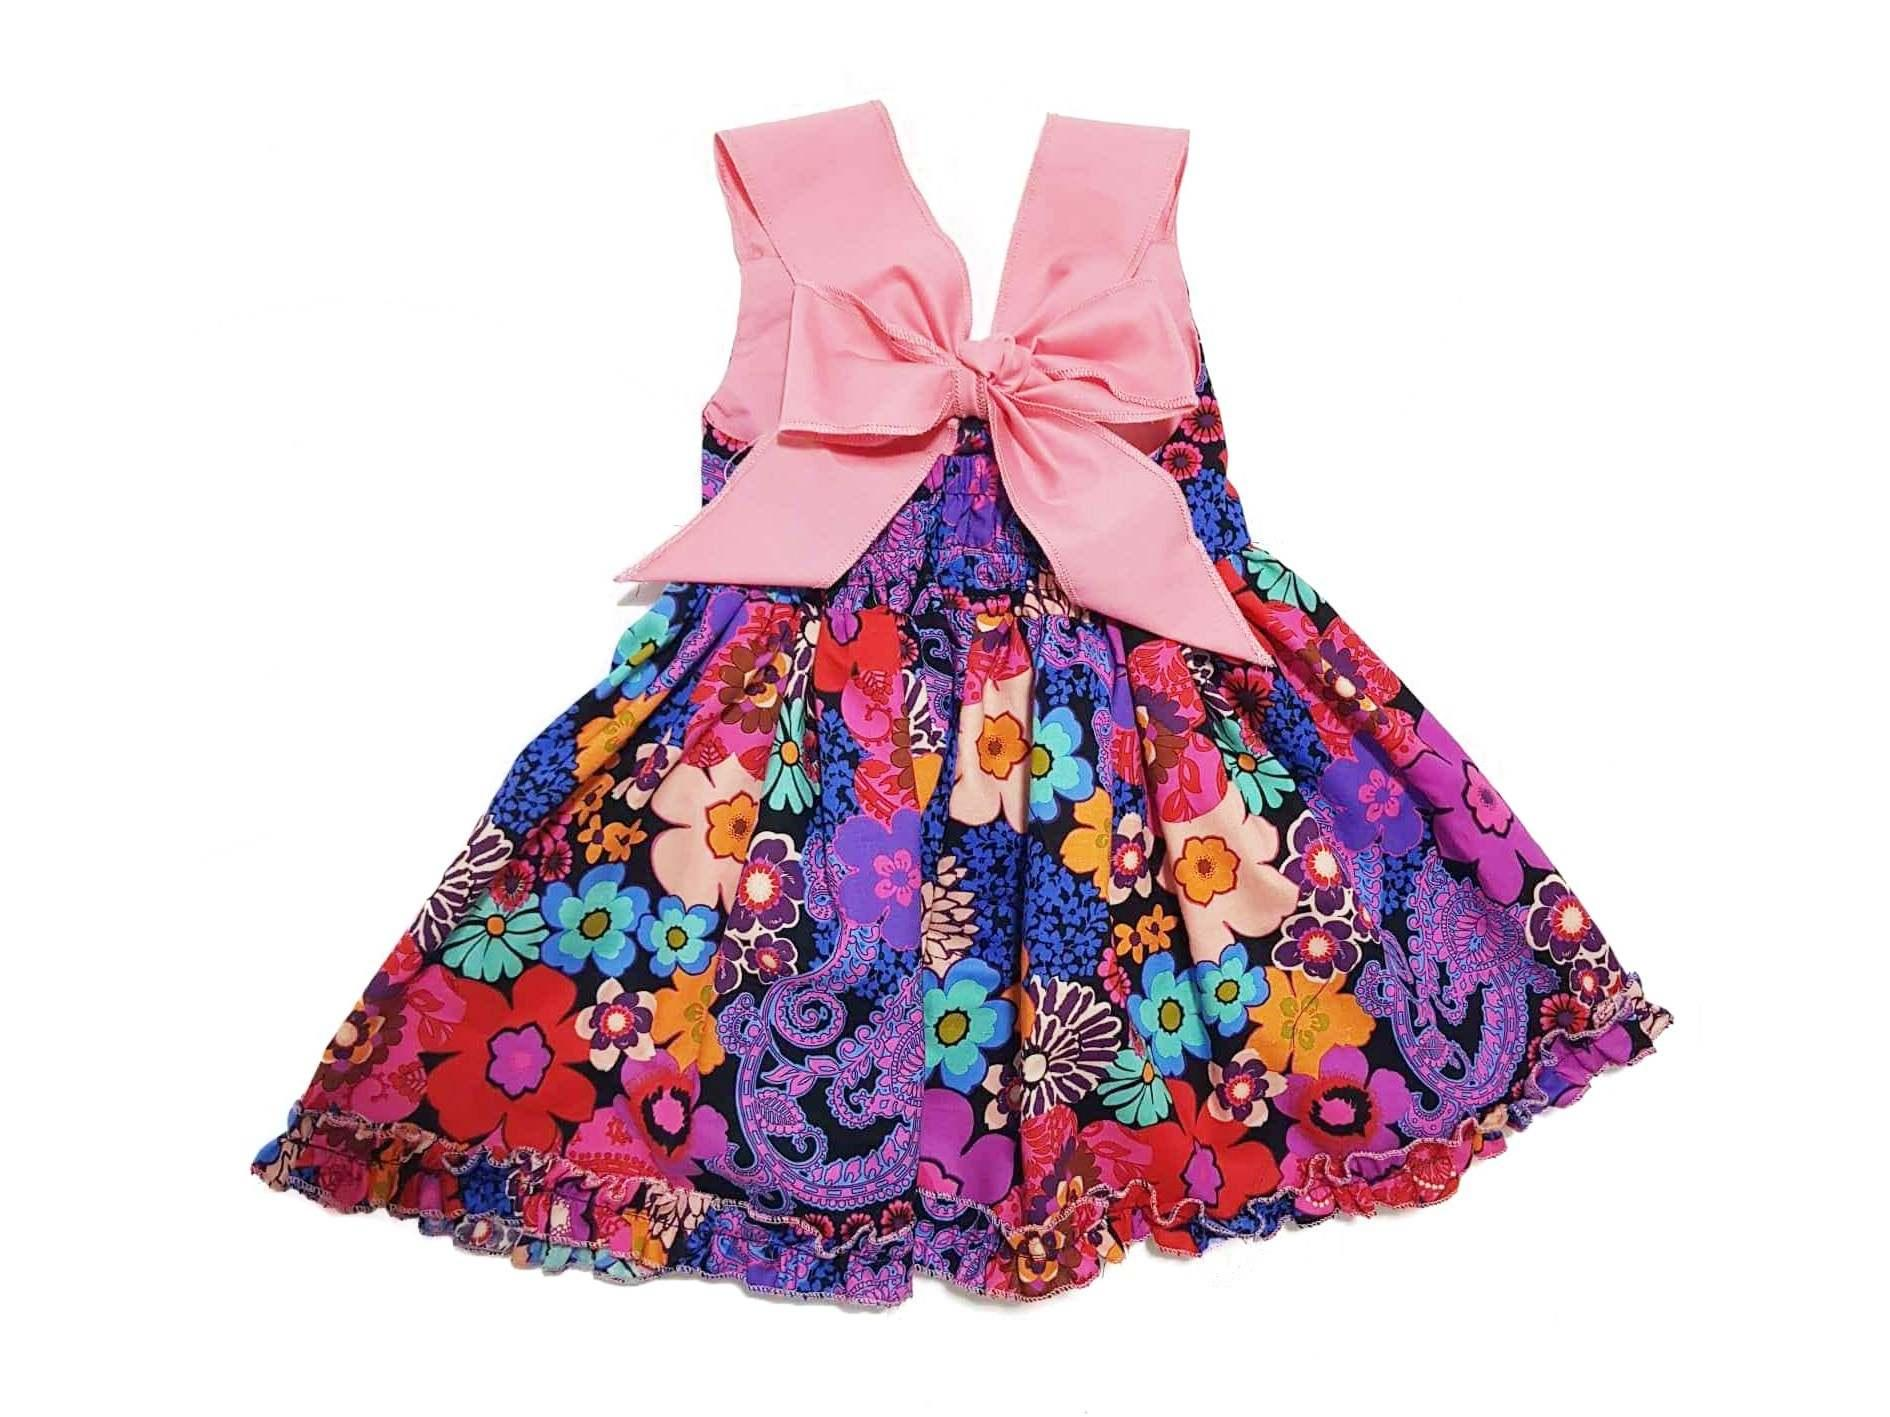 Baby Clothes For Sale Baby Clothing Online Brands